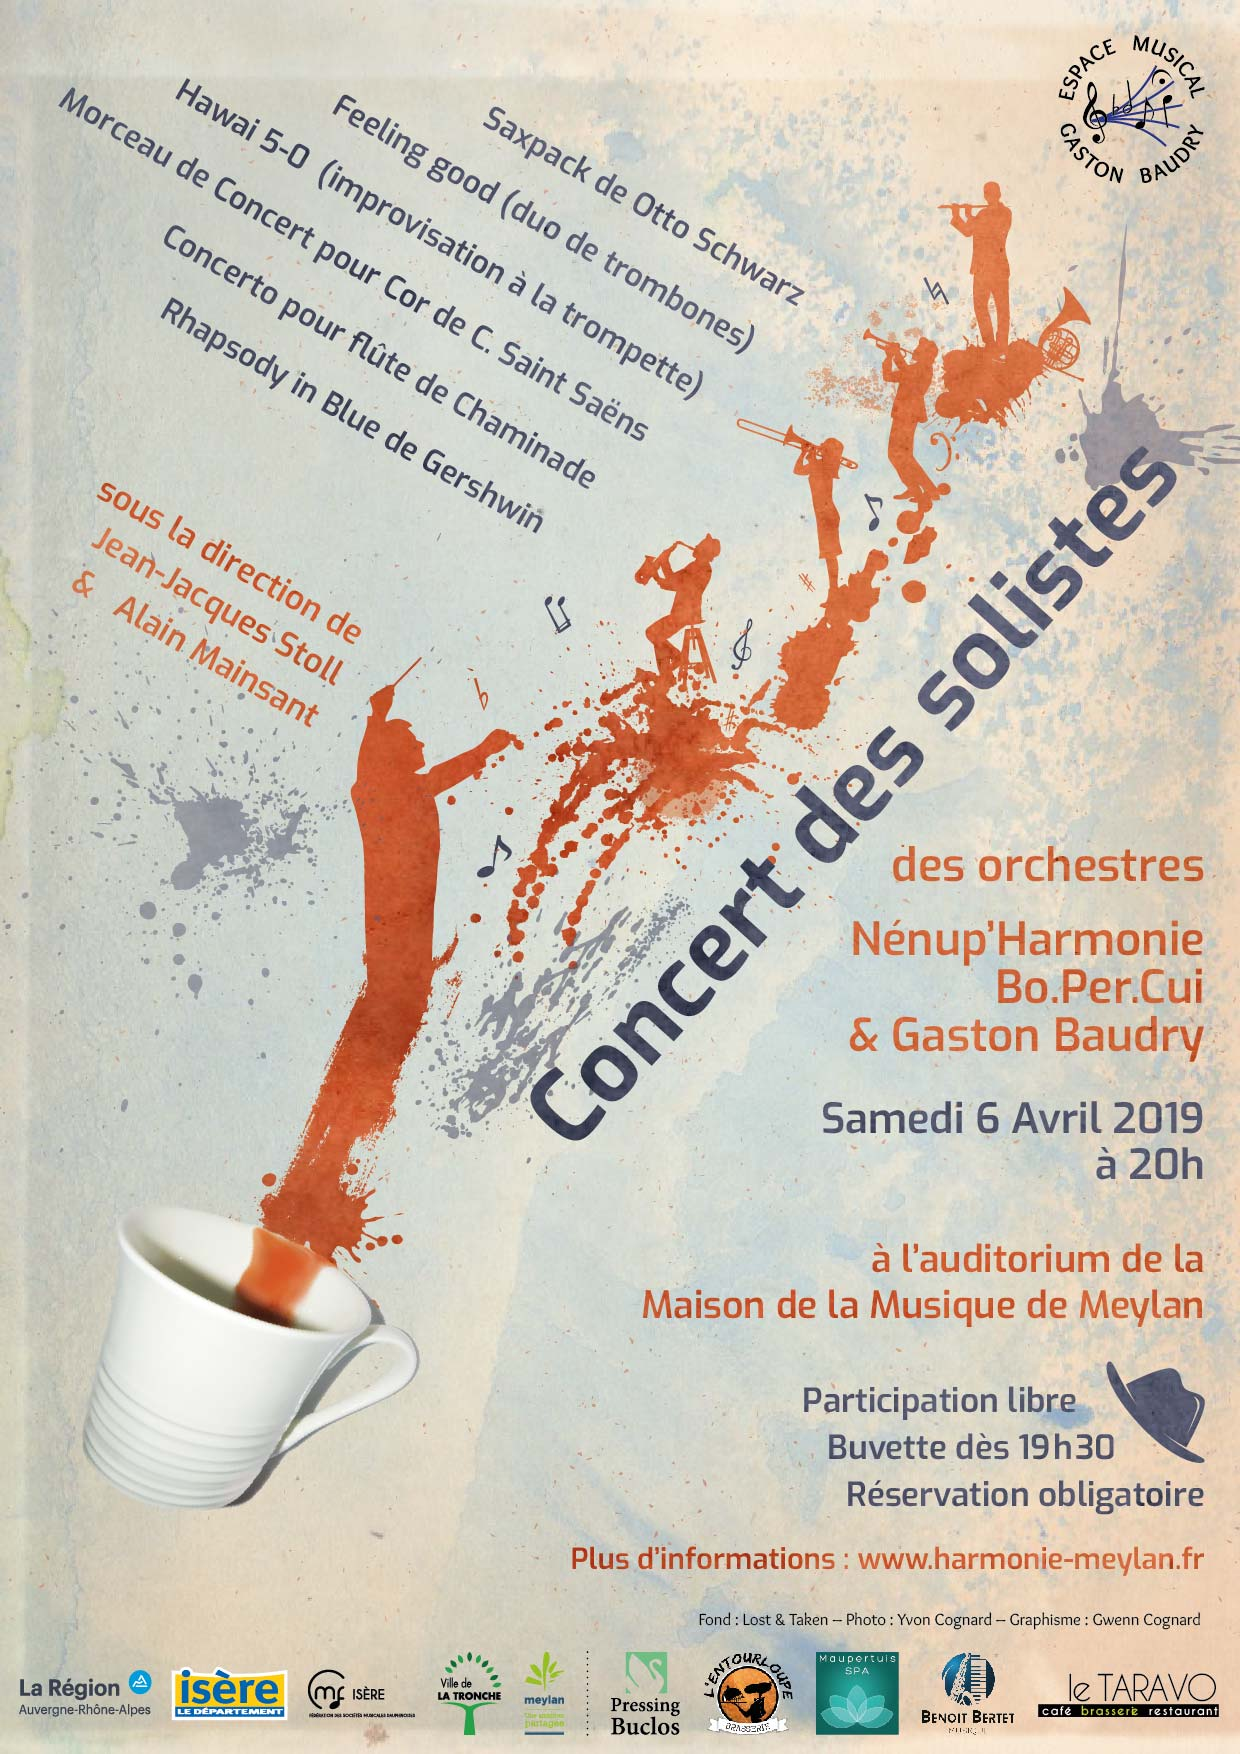 Concert Espace Musical Gaston Baudry